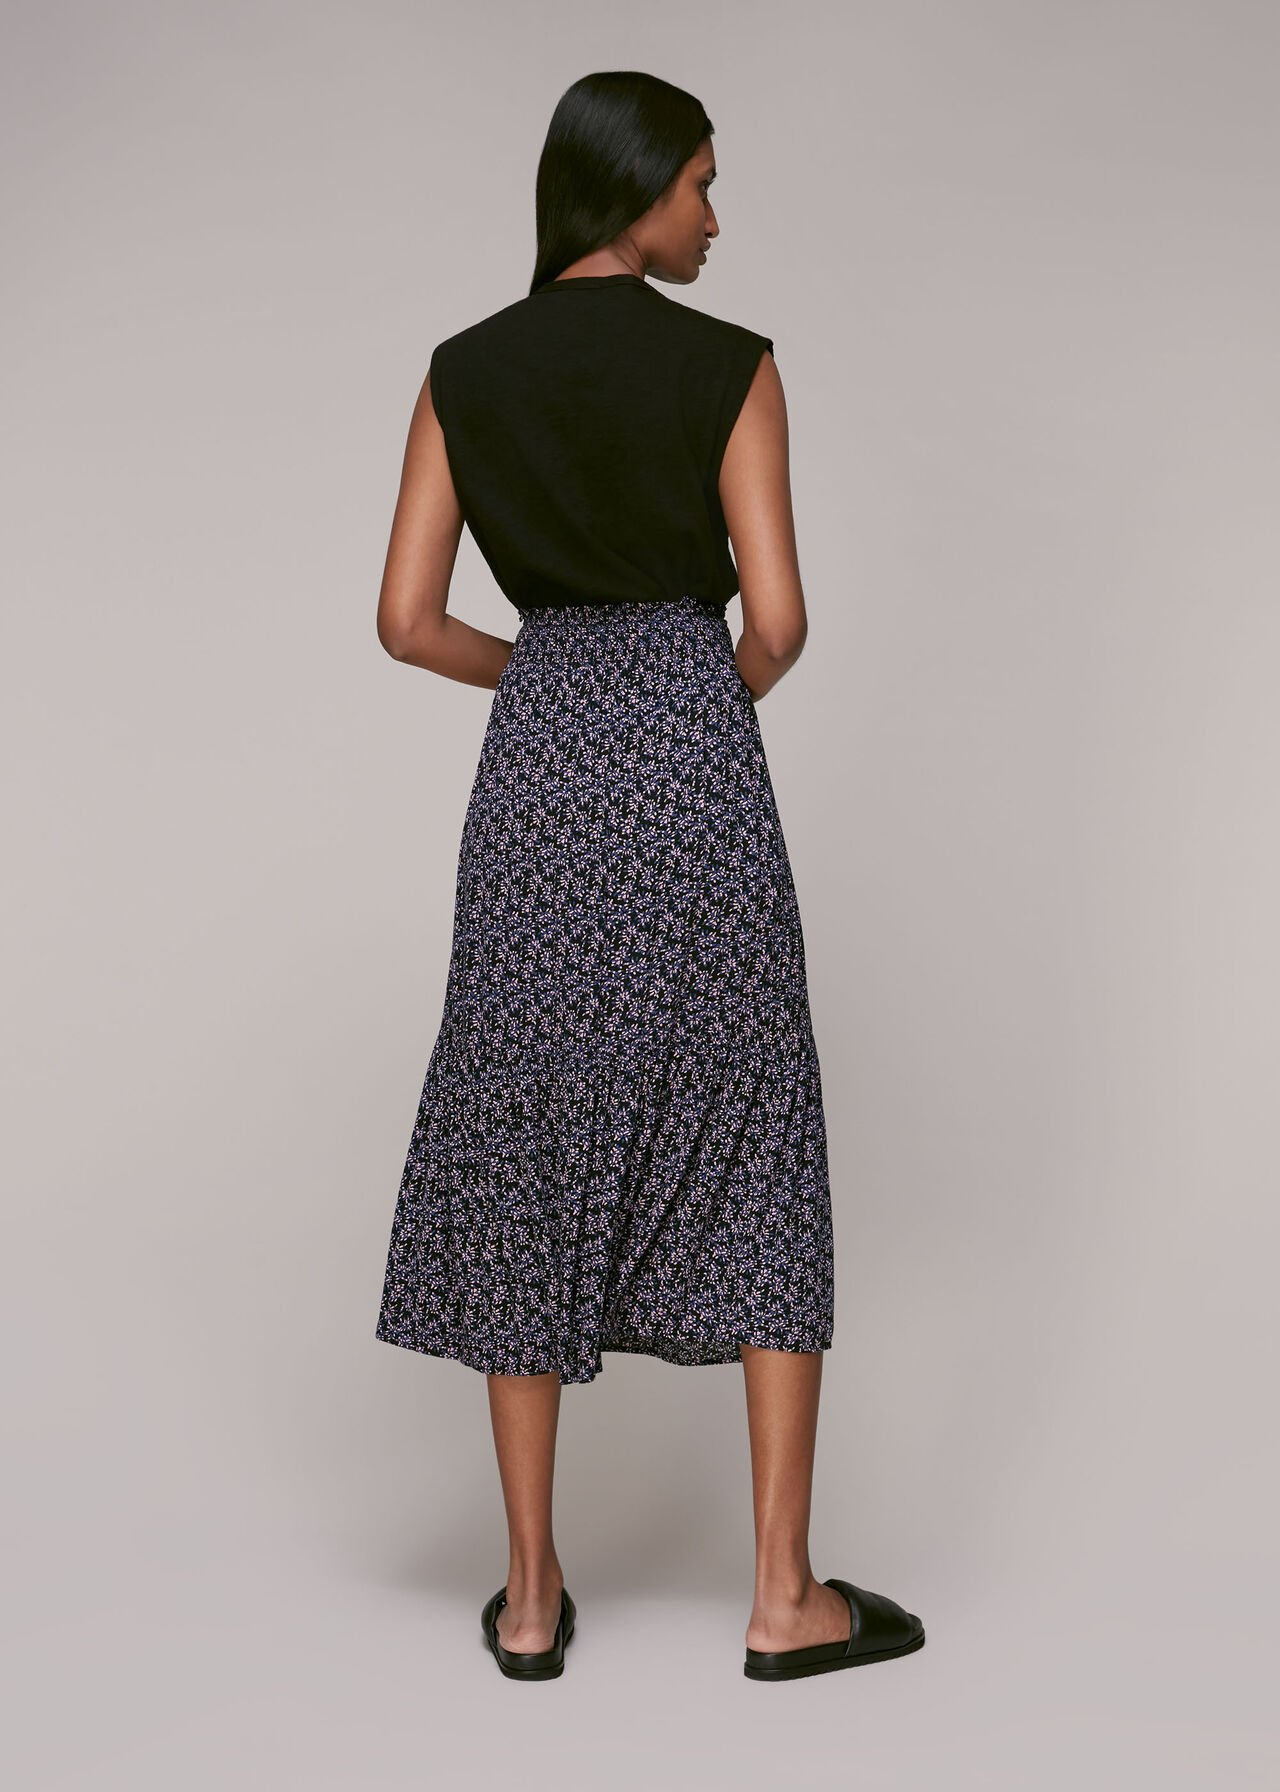 Kinetic Print Tie Front Skirt Multicolour